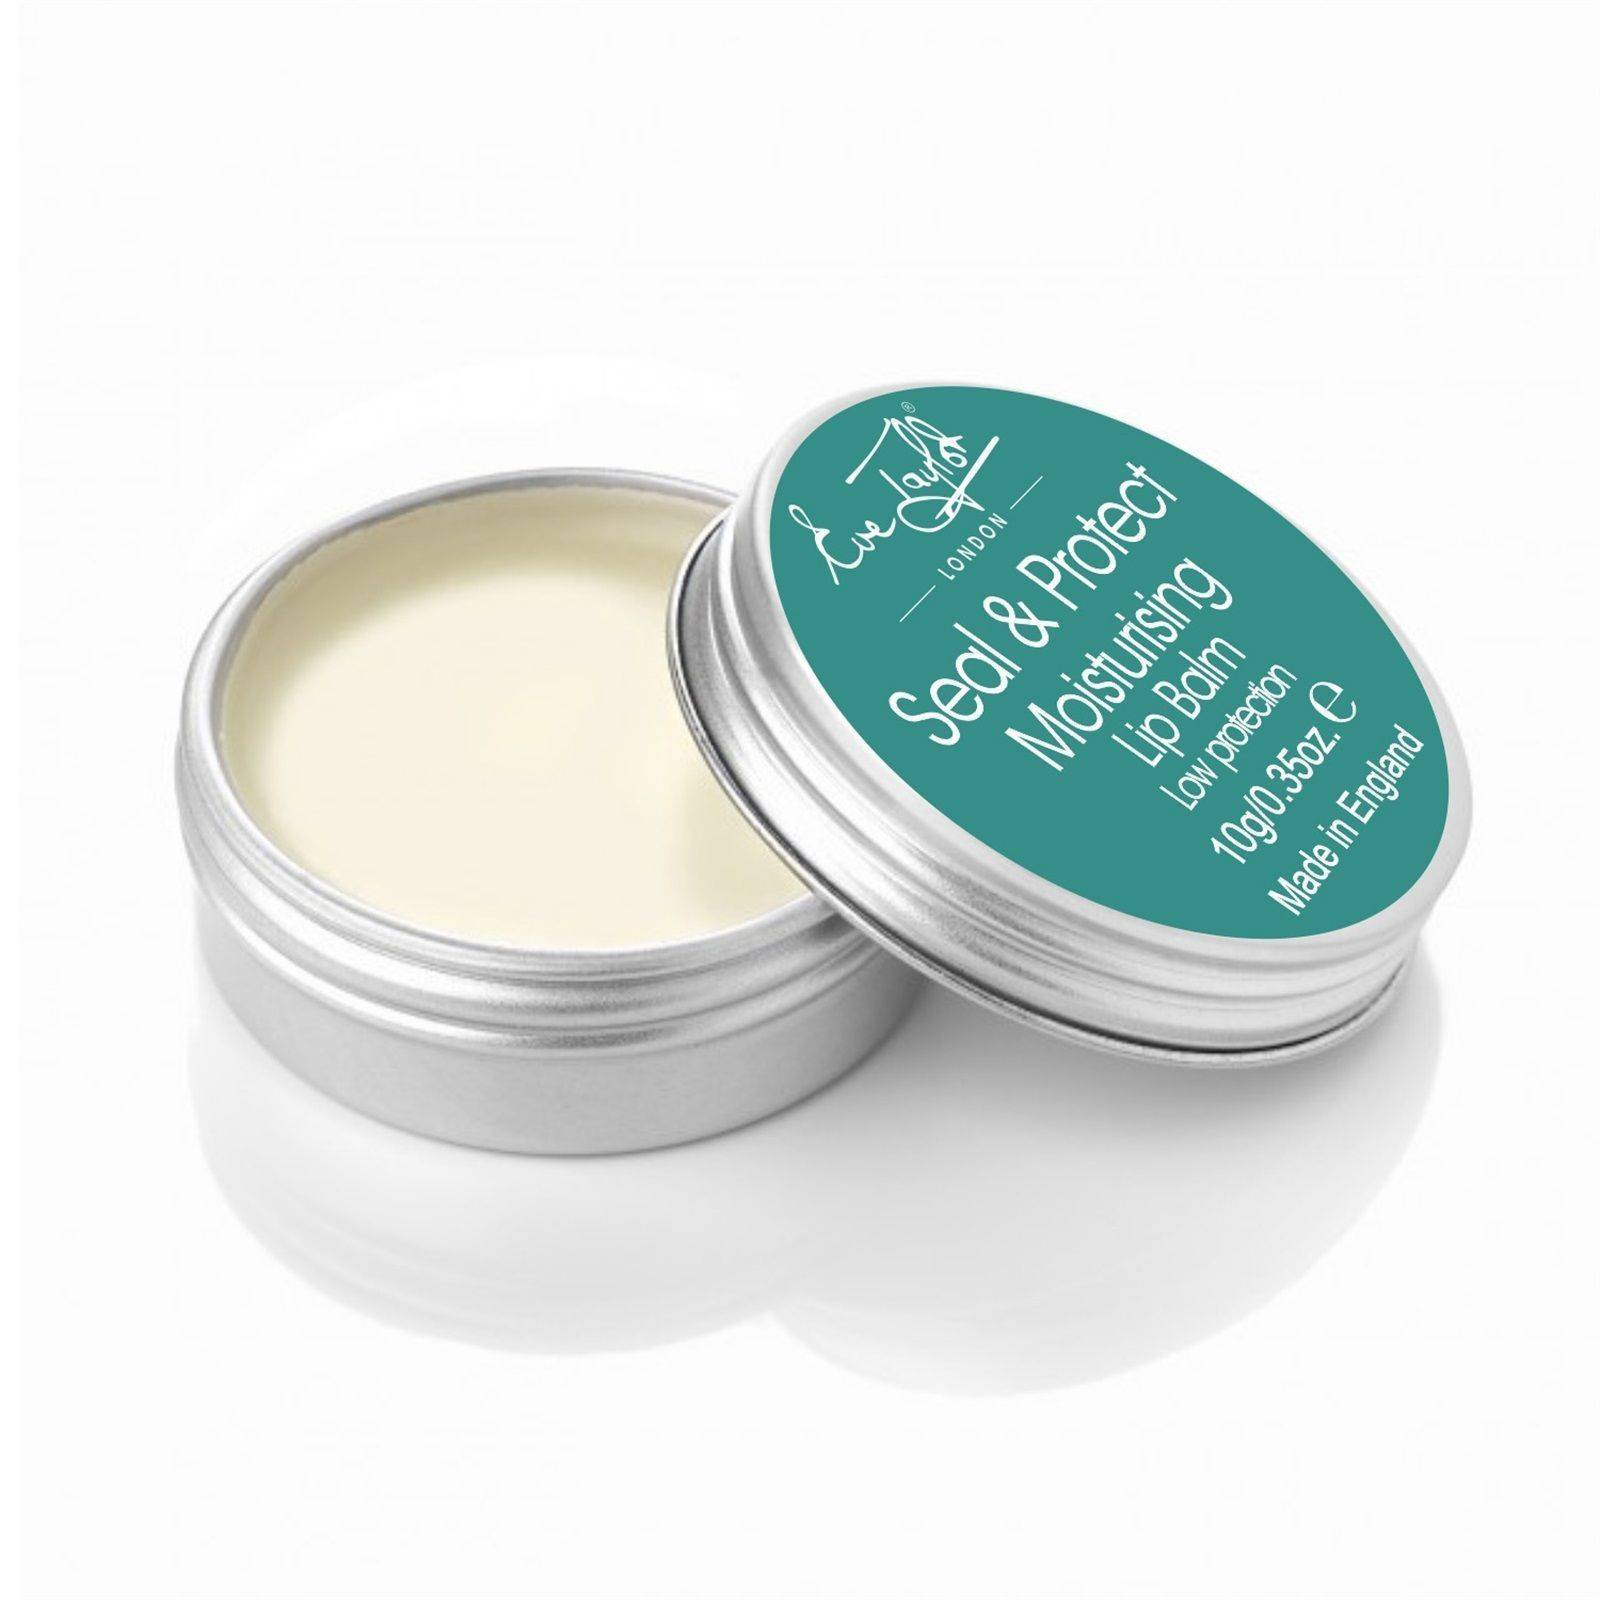 Seal and Protect Lip Balm - SPF 10